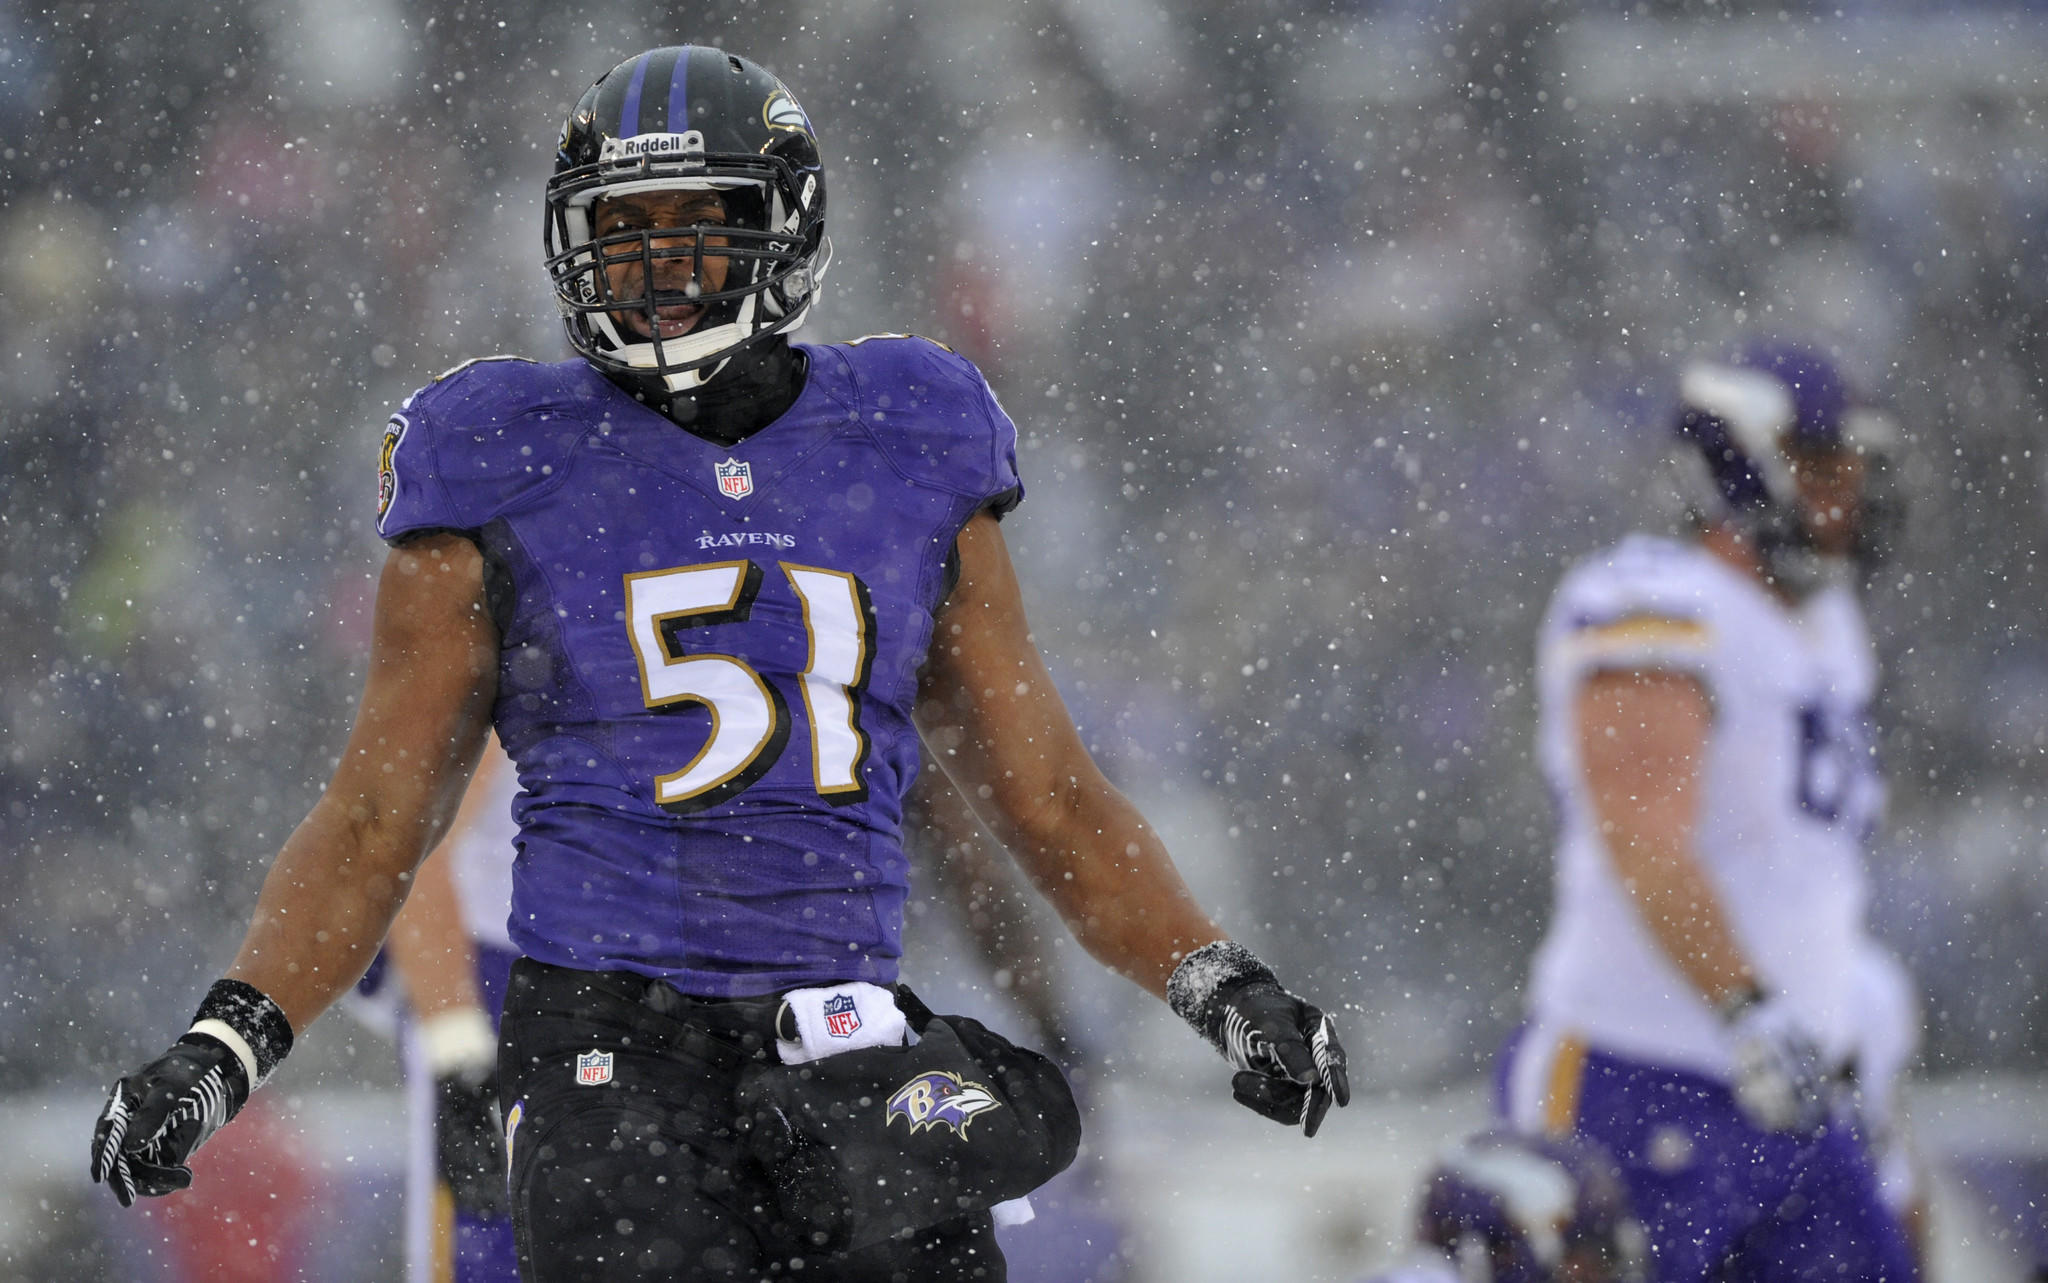 Age: 31 Key 2013 stat: 123 tackles Chances he's back: High,br> Skinny: The Ravens signed the veteran late last offseason and he was arguably their most productive free agent acquisition. Smith led the Ravens in tackles, was third in sacks and tied for second in interceptions. Not surprisingly, the Ravens made re-signing him a priority but they've been unable to do it to this point. Smith's age may scare some teams away but he showed more than enough last year to still have a pretty solid market.